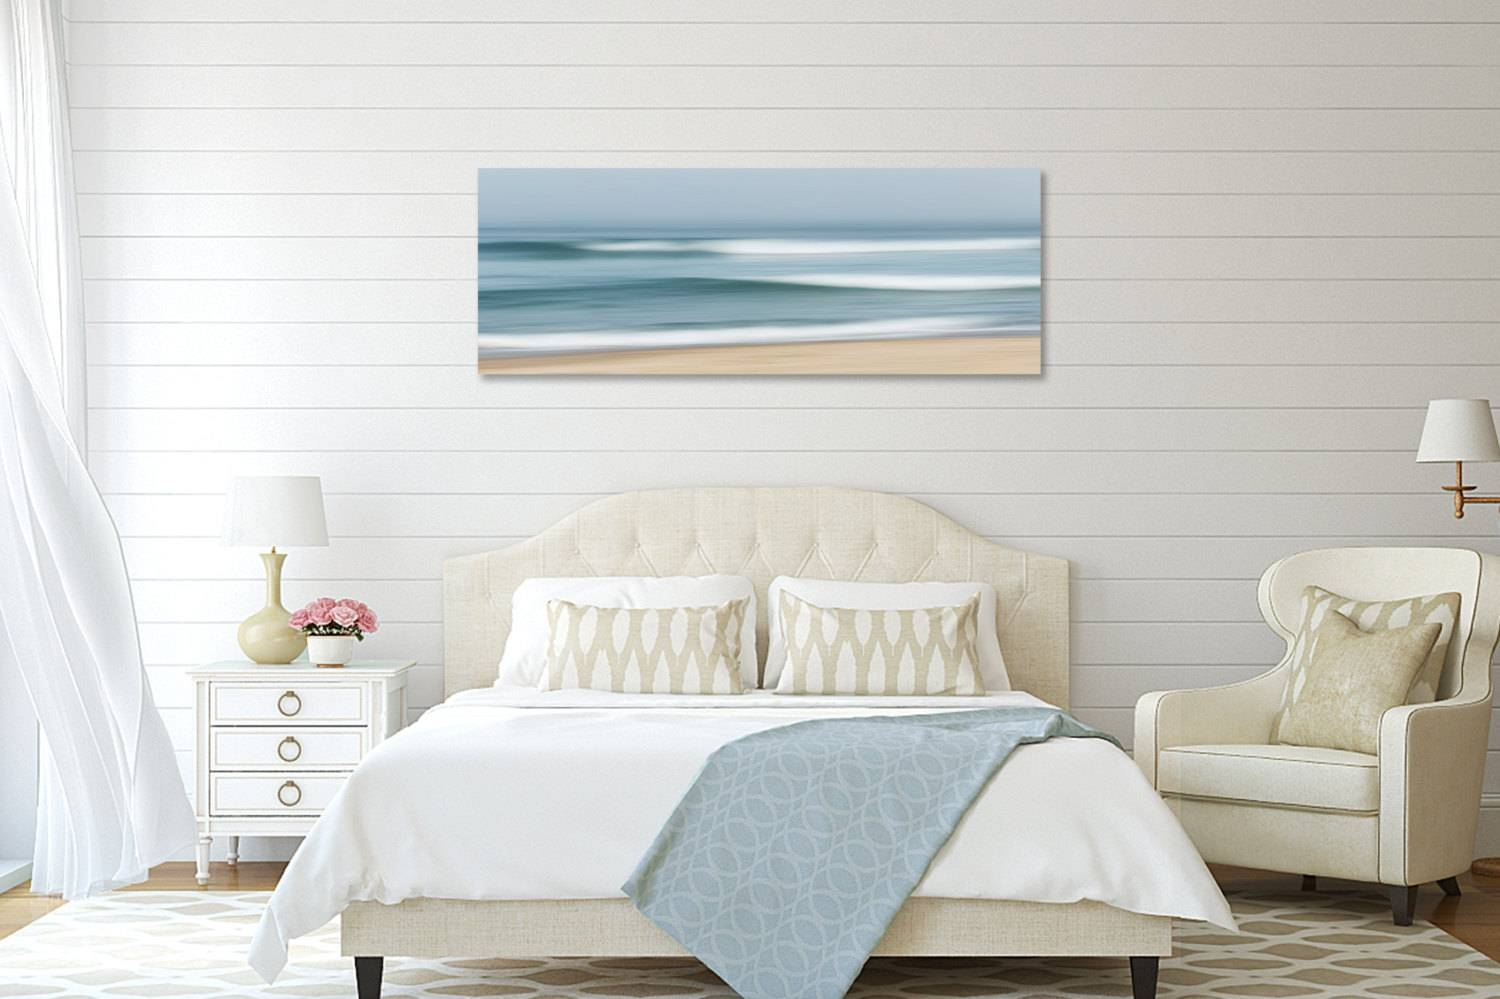 Large Abstract Beach Canvas Wall Art Ocean Seascape Within Most Current Beach Wall Art For Bedroom (View 12 of 20)